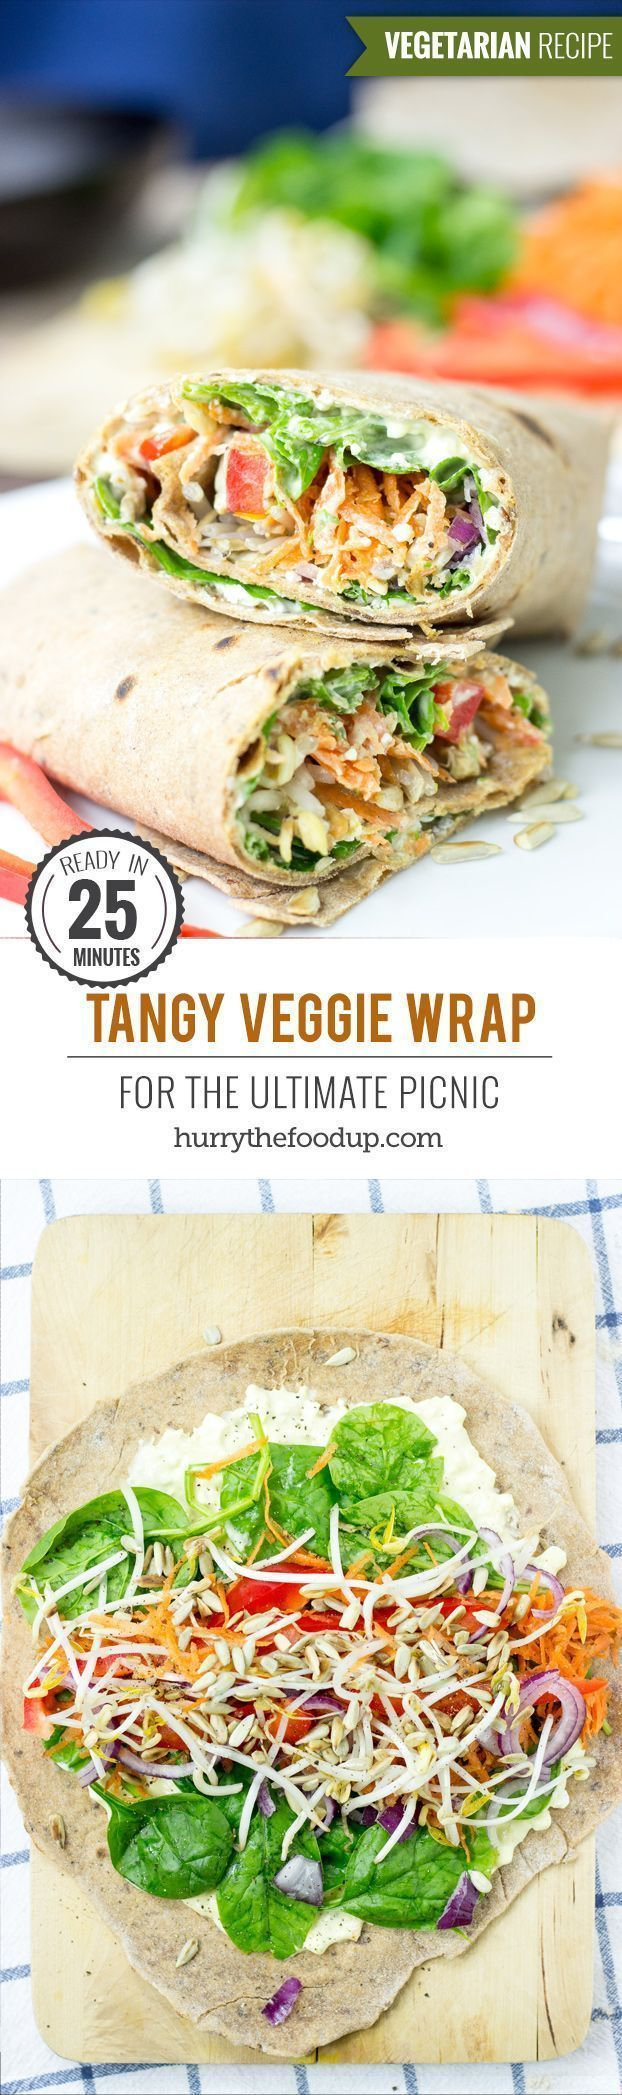 Easy picnic vegetarian recipes